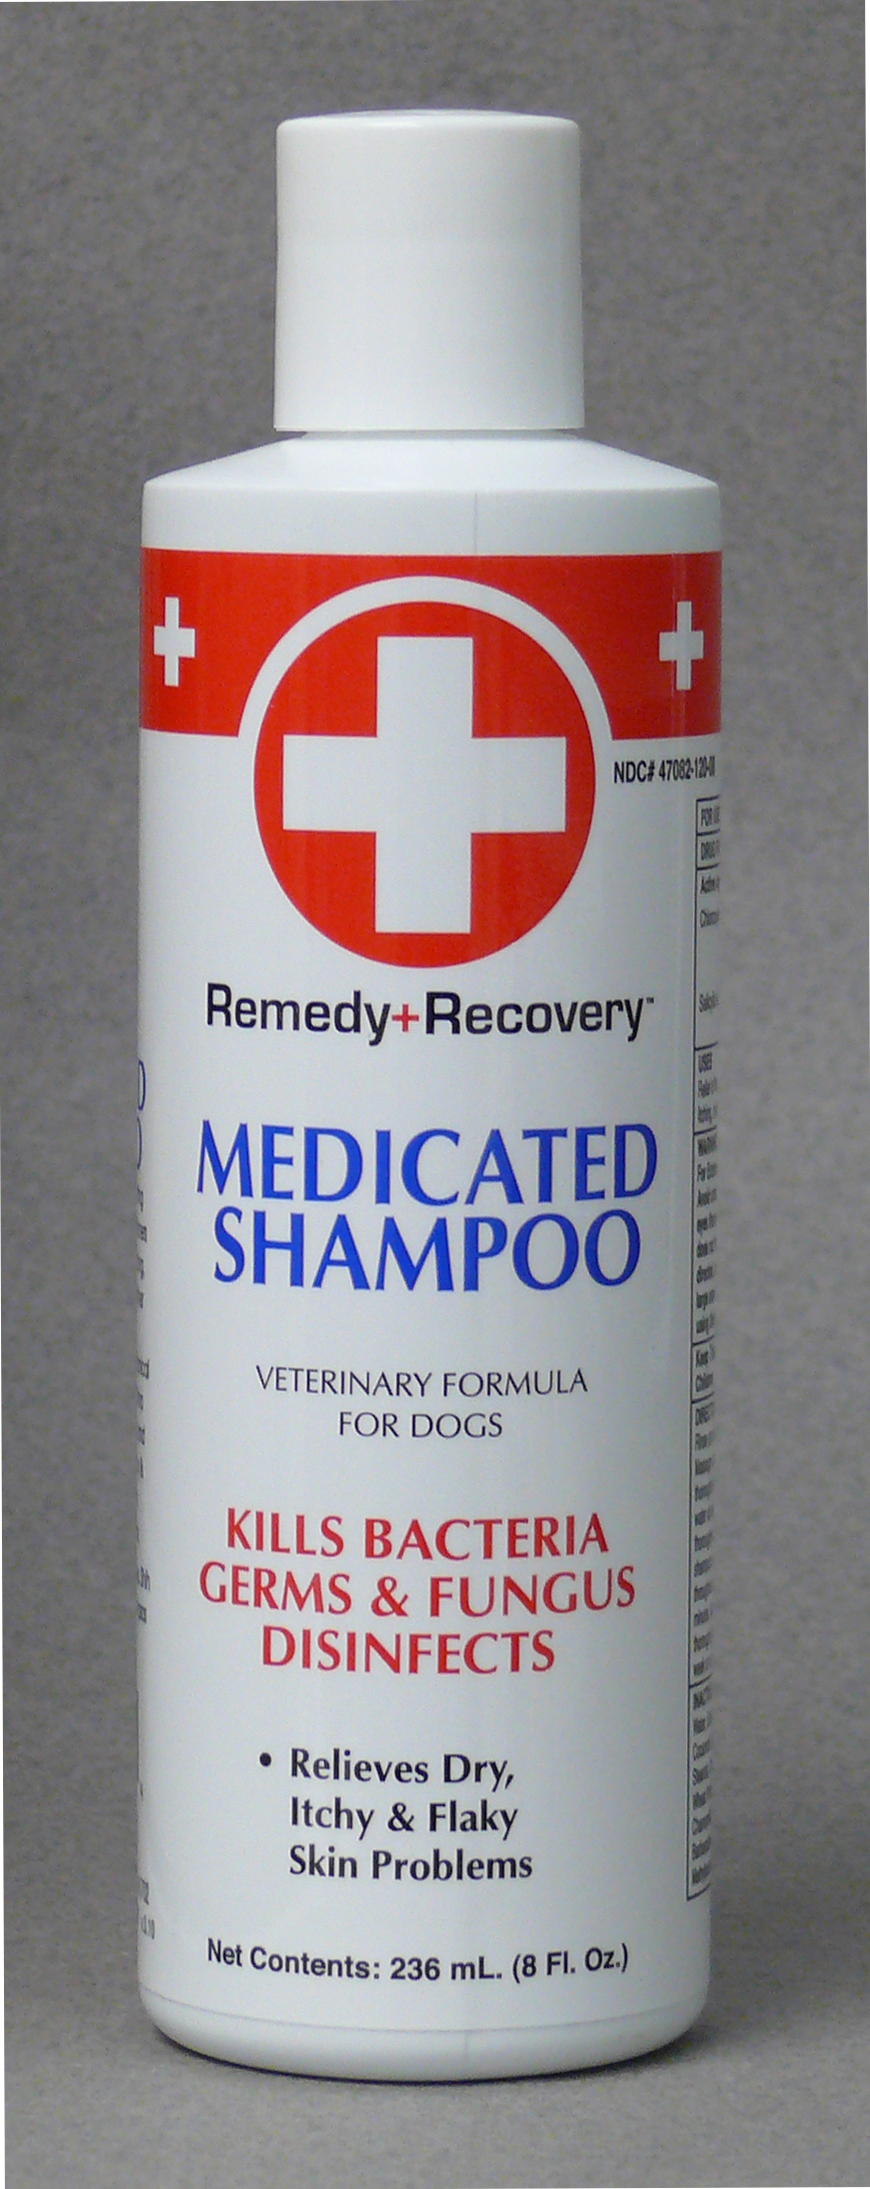 Remedy & Recovery Medicated Shampoo